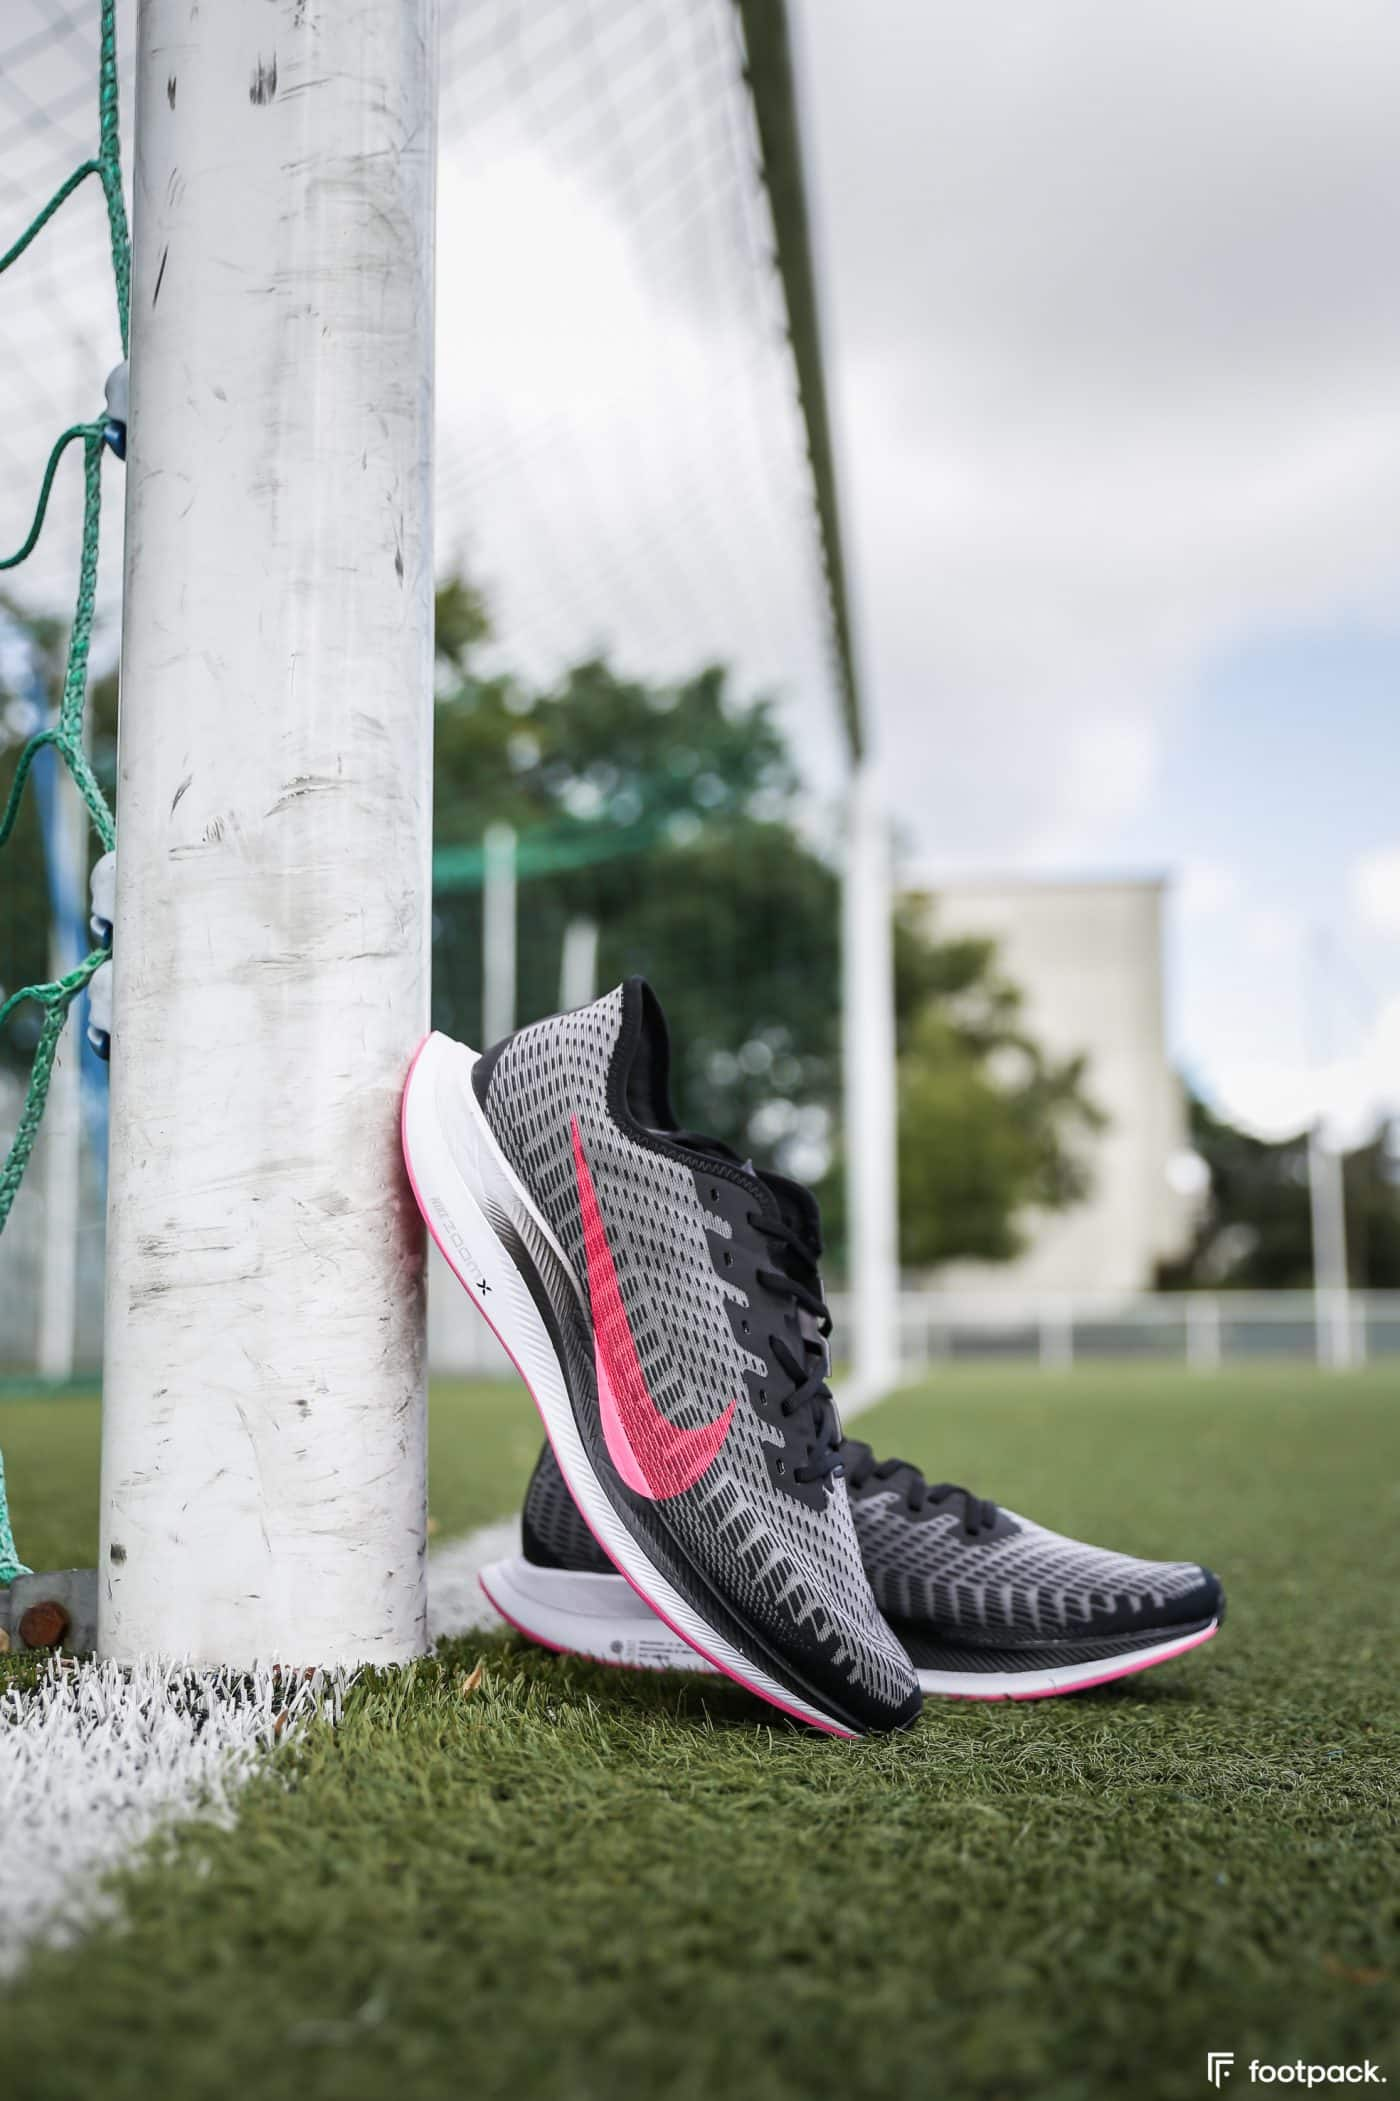 jeu-concours-footpack-crampons-1